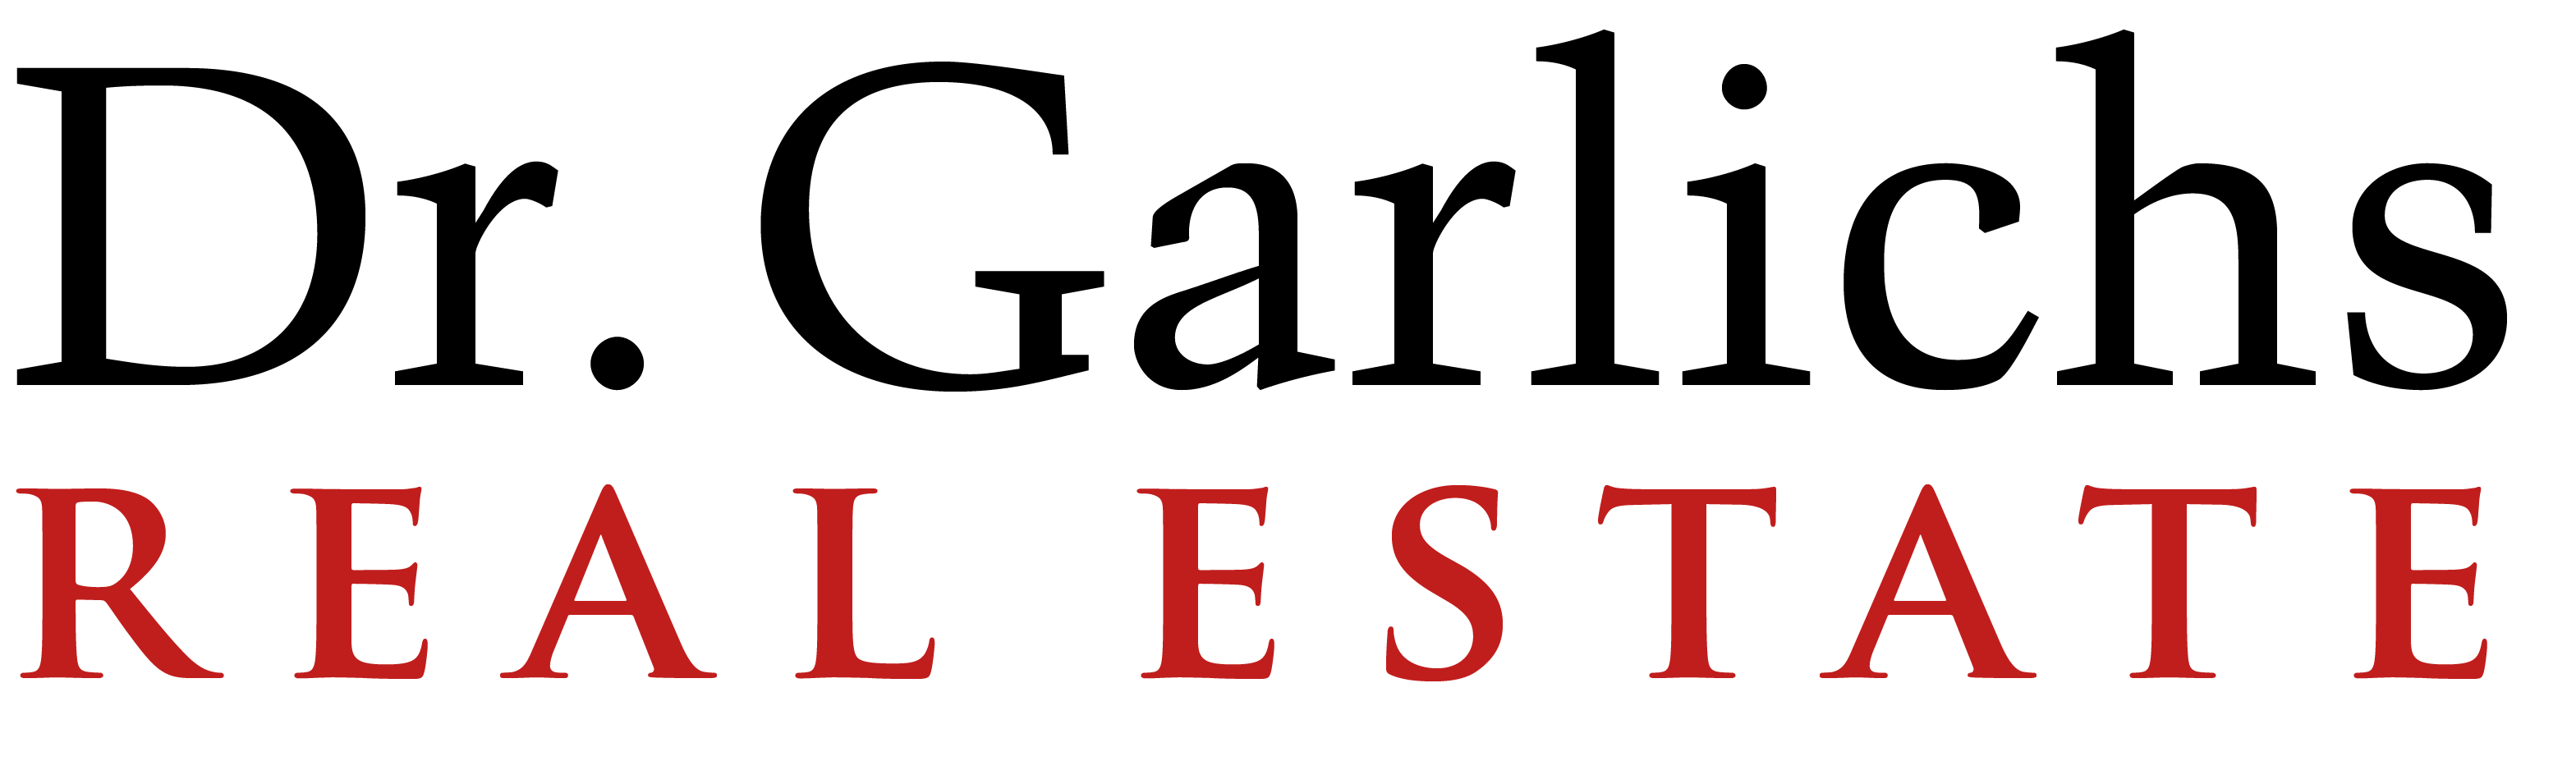 Dr. Garlichs Immobilien - Real Estate - Inmobiliaria